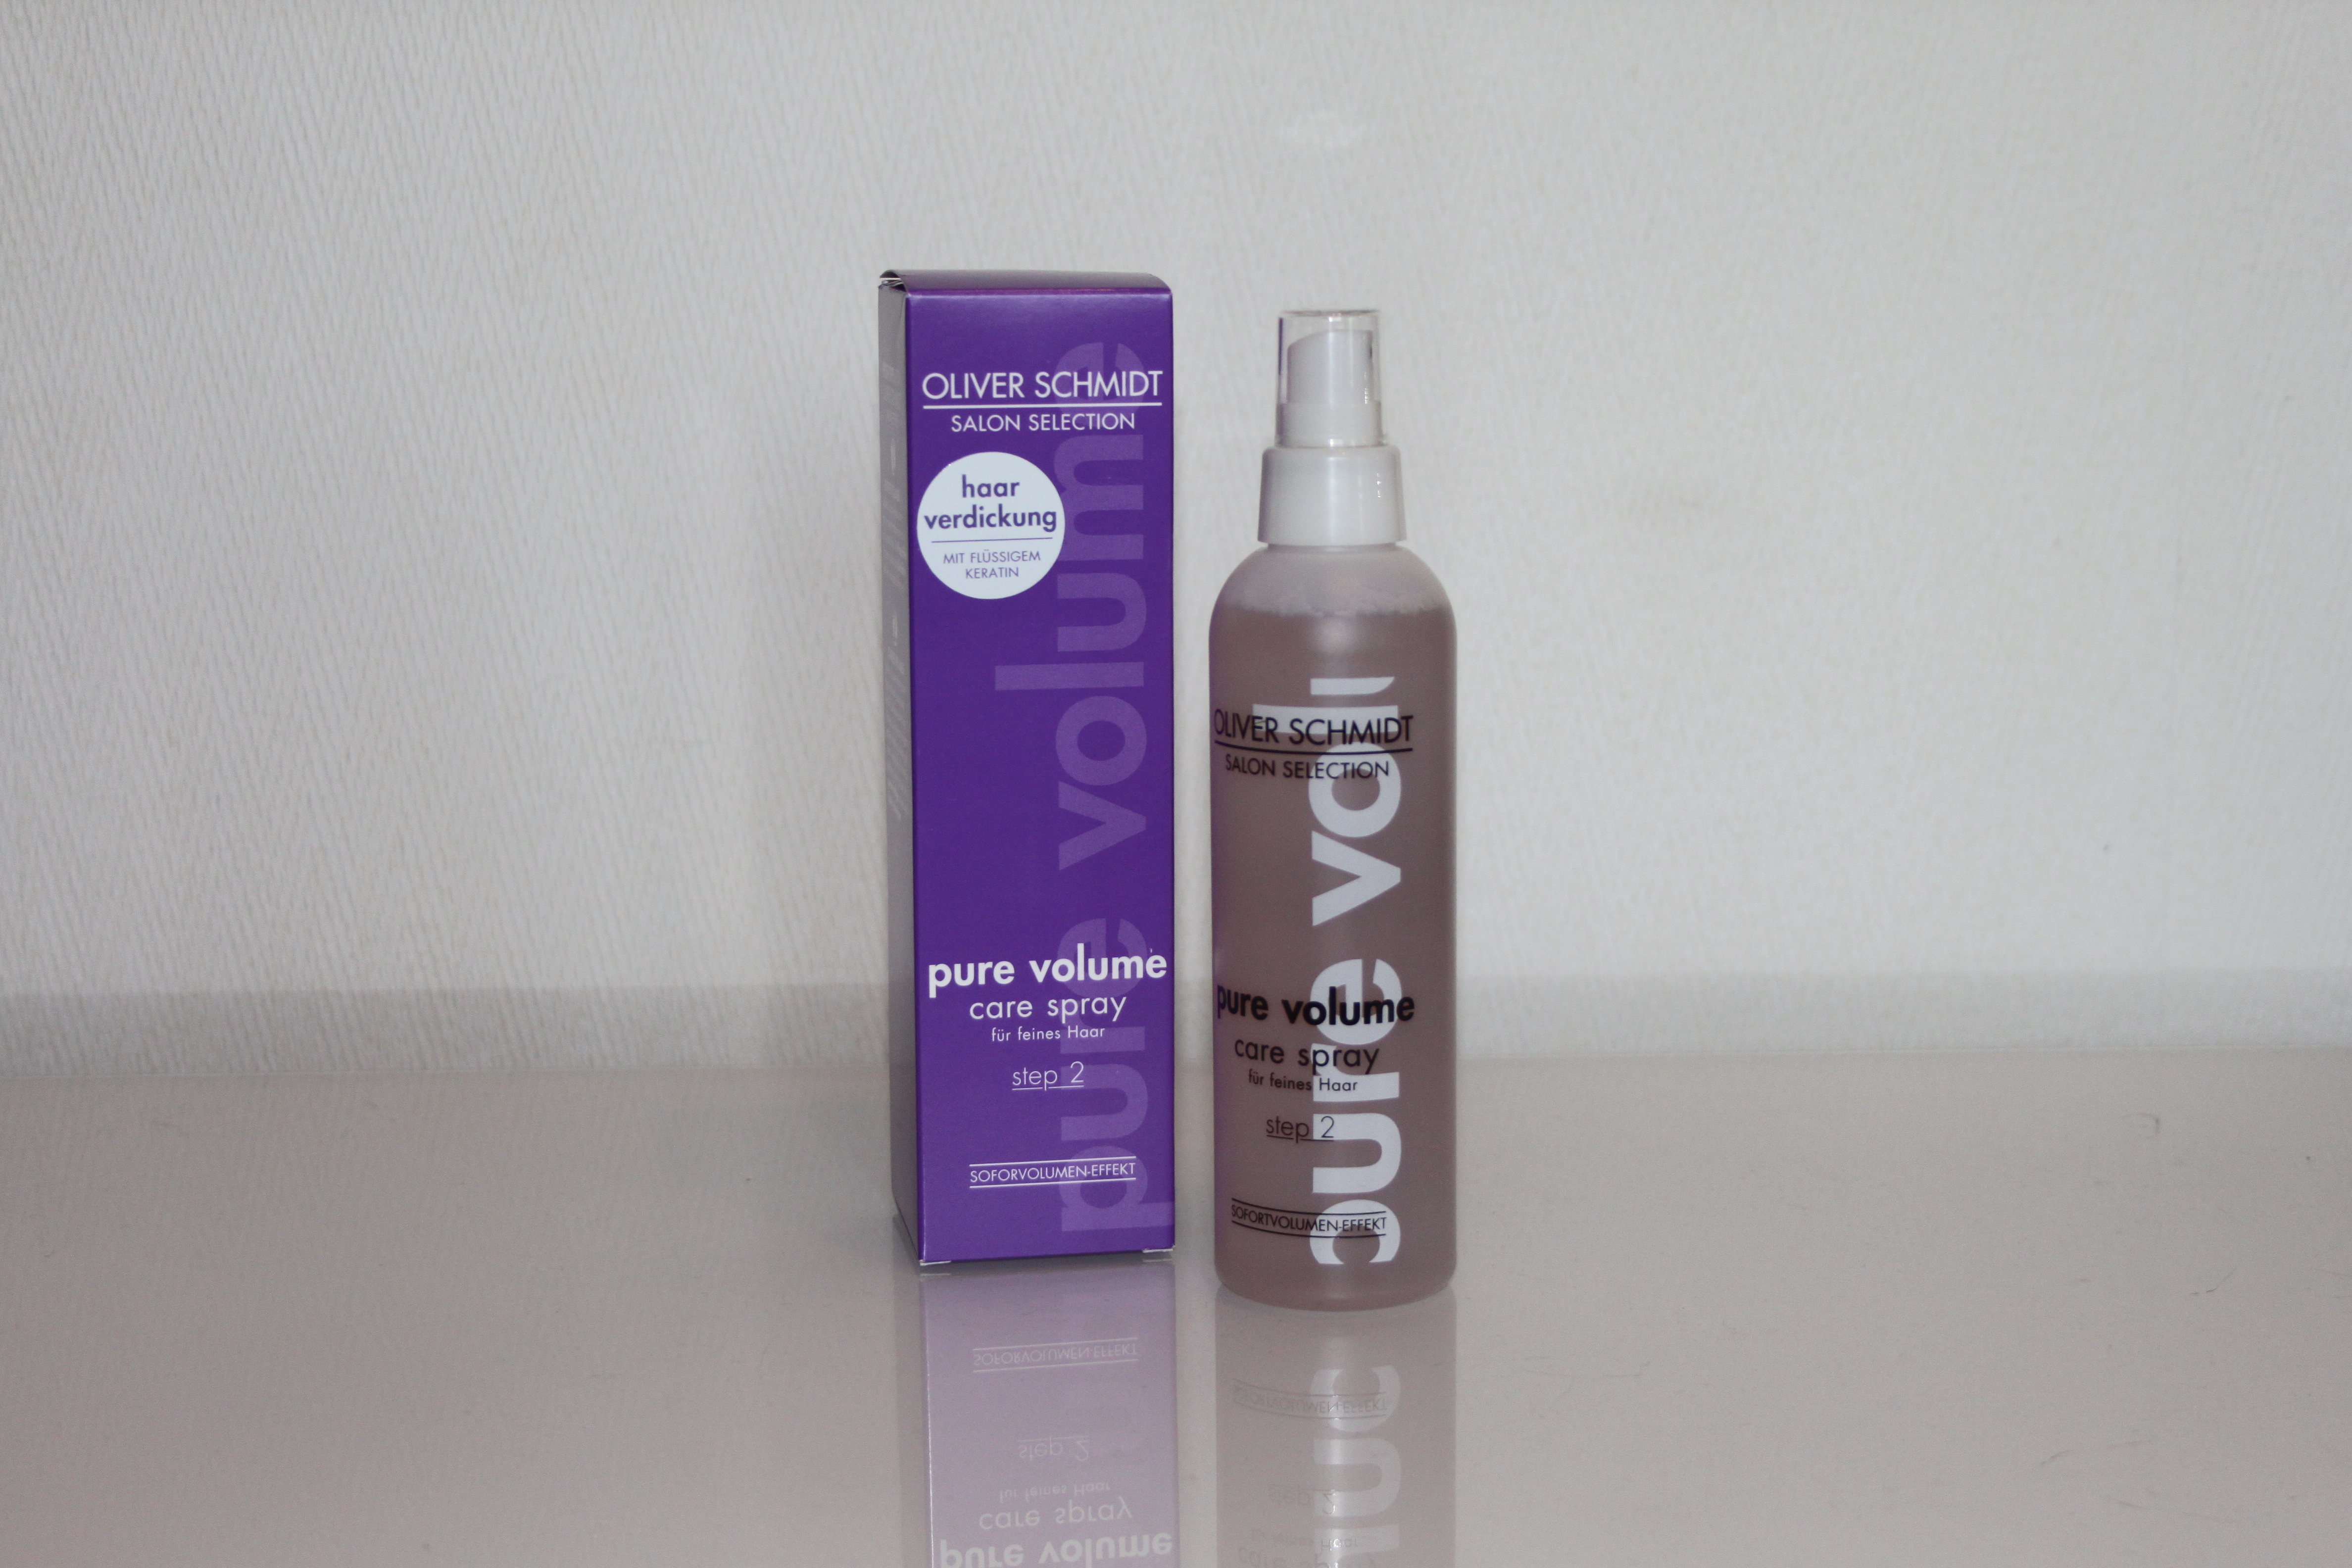 Oliver Schmidt Salon Selection pure volume - Care Spray